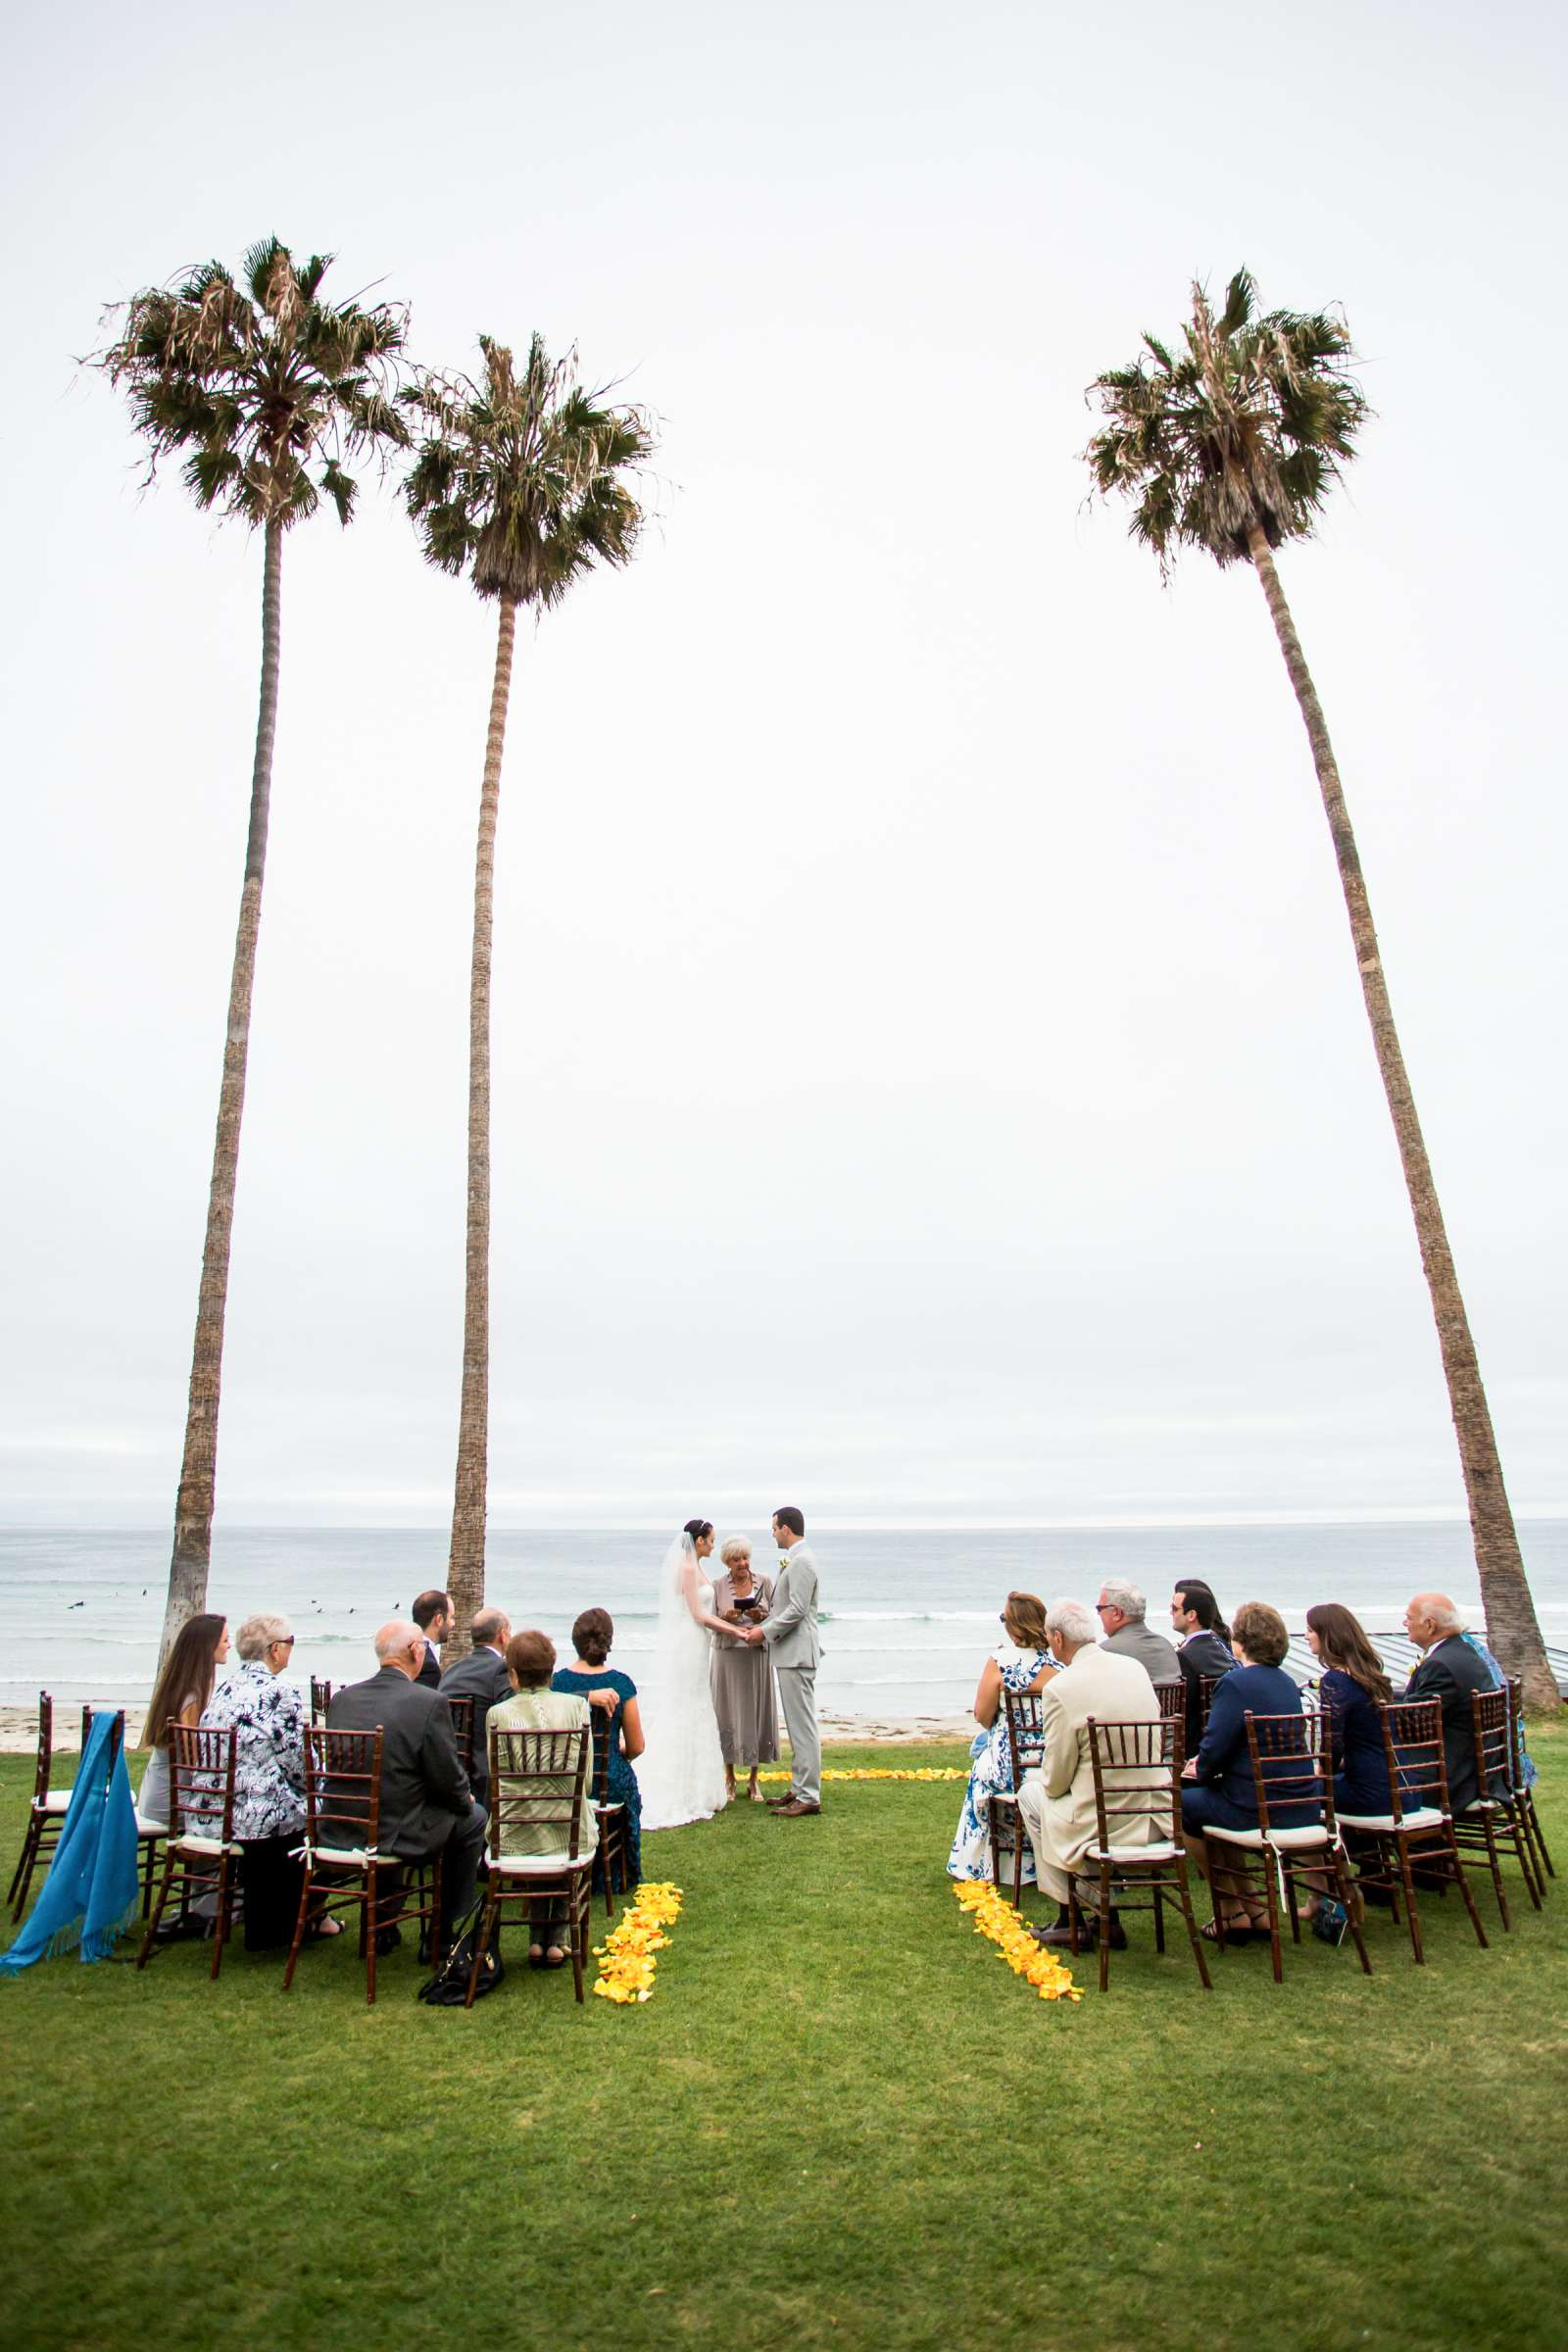 Scripps Seaside Forum Wedding coordinated by Francine Ribeau Events, Shaina and Christopher Wedding Photo #24 by True Photography